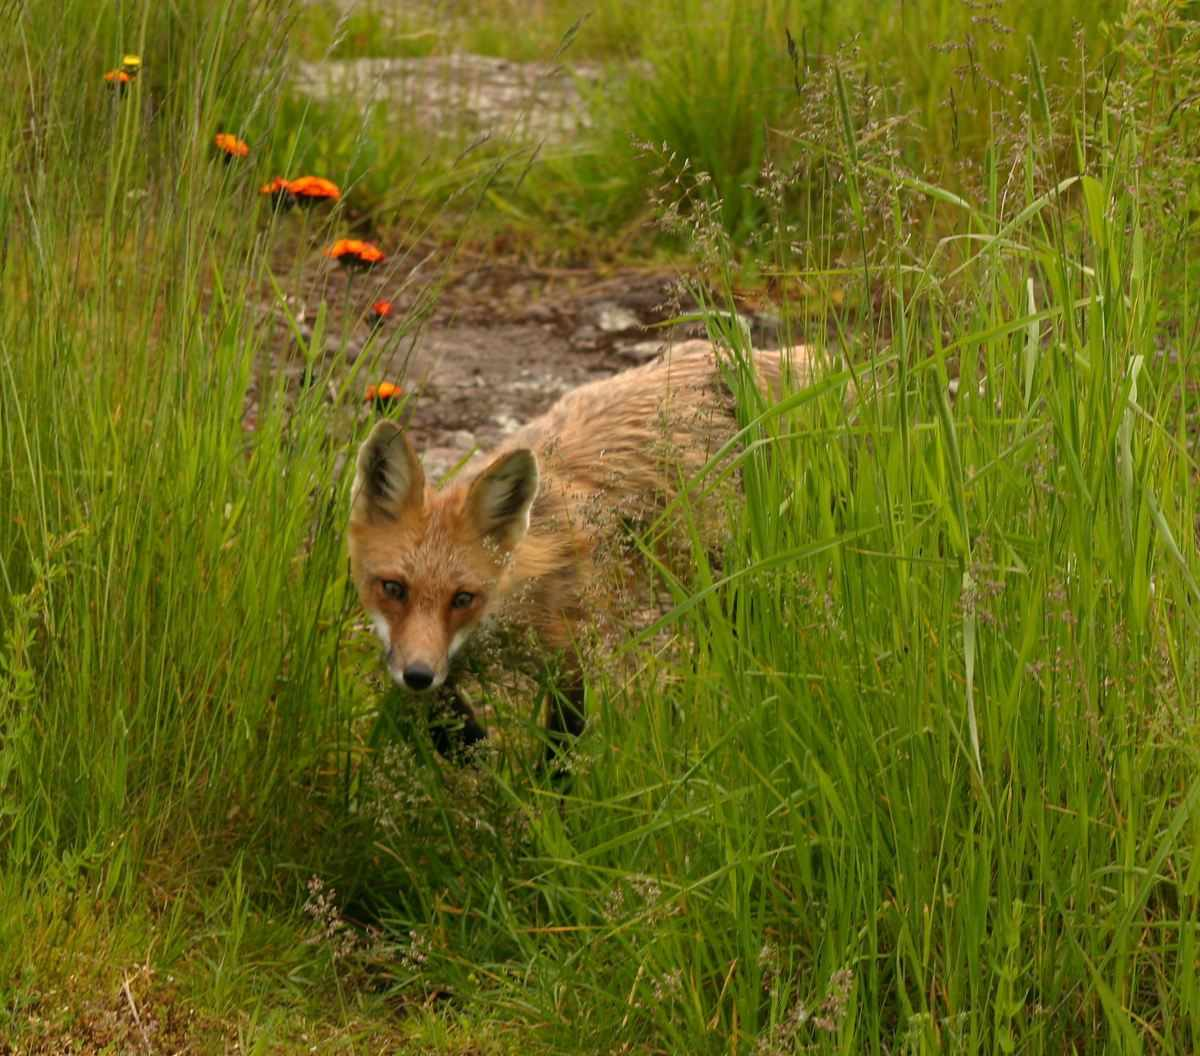 Title: Fox at Malone Bay Campground -2 | Credit: Ray Dumas | License: CC BY-SA 2.0